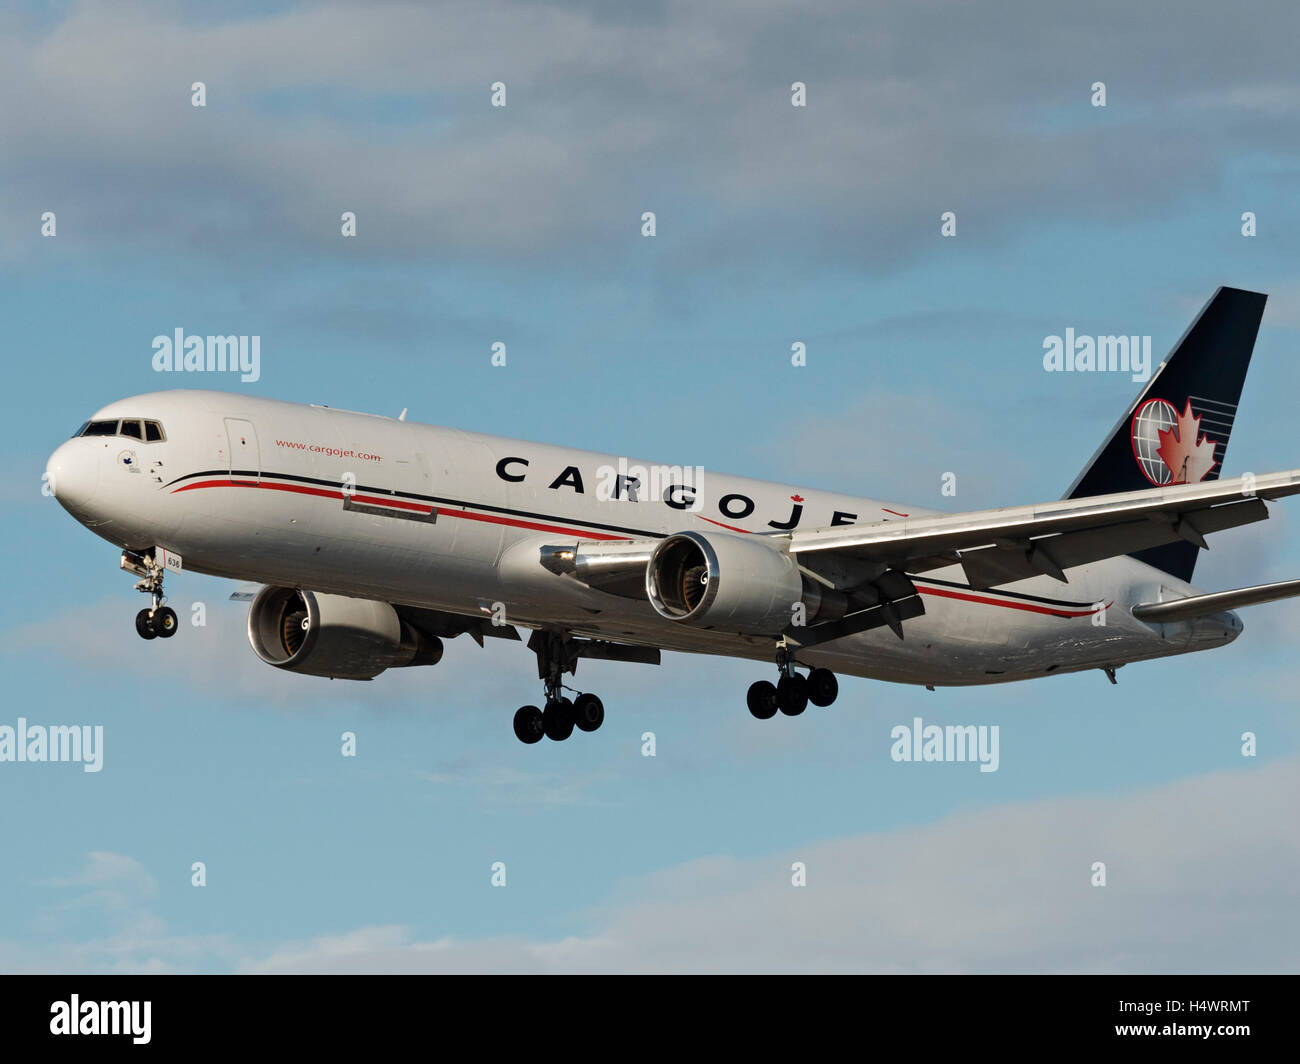 Cargojet Airways Boeing 767 C-FMIJ air cargo freighter final approach for landing Vancouver International Airport, - Stock Image